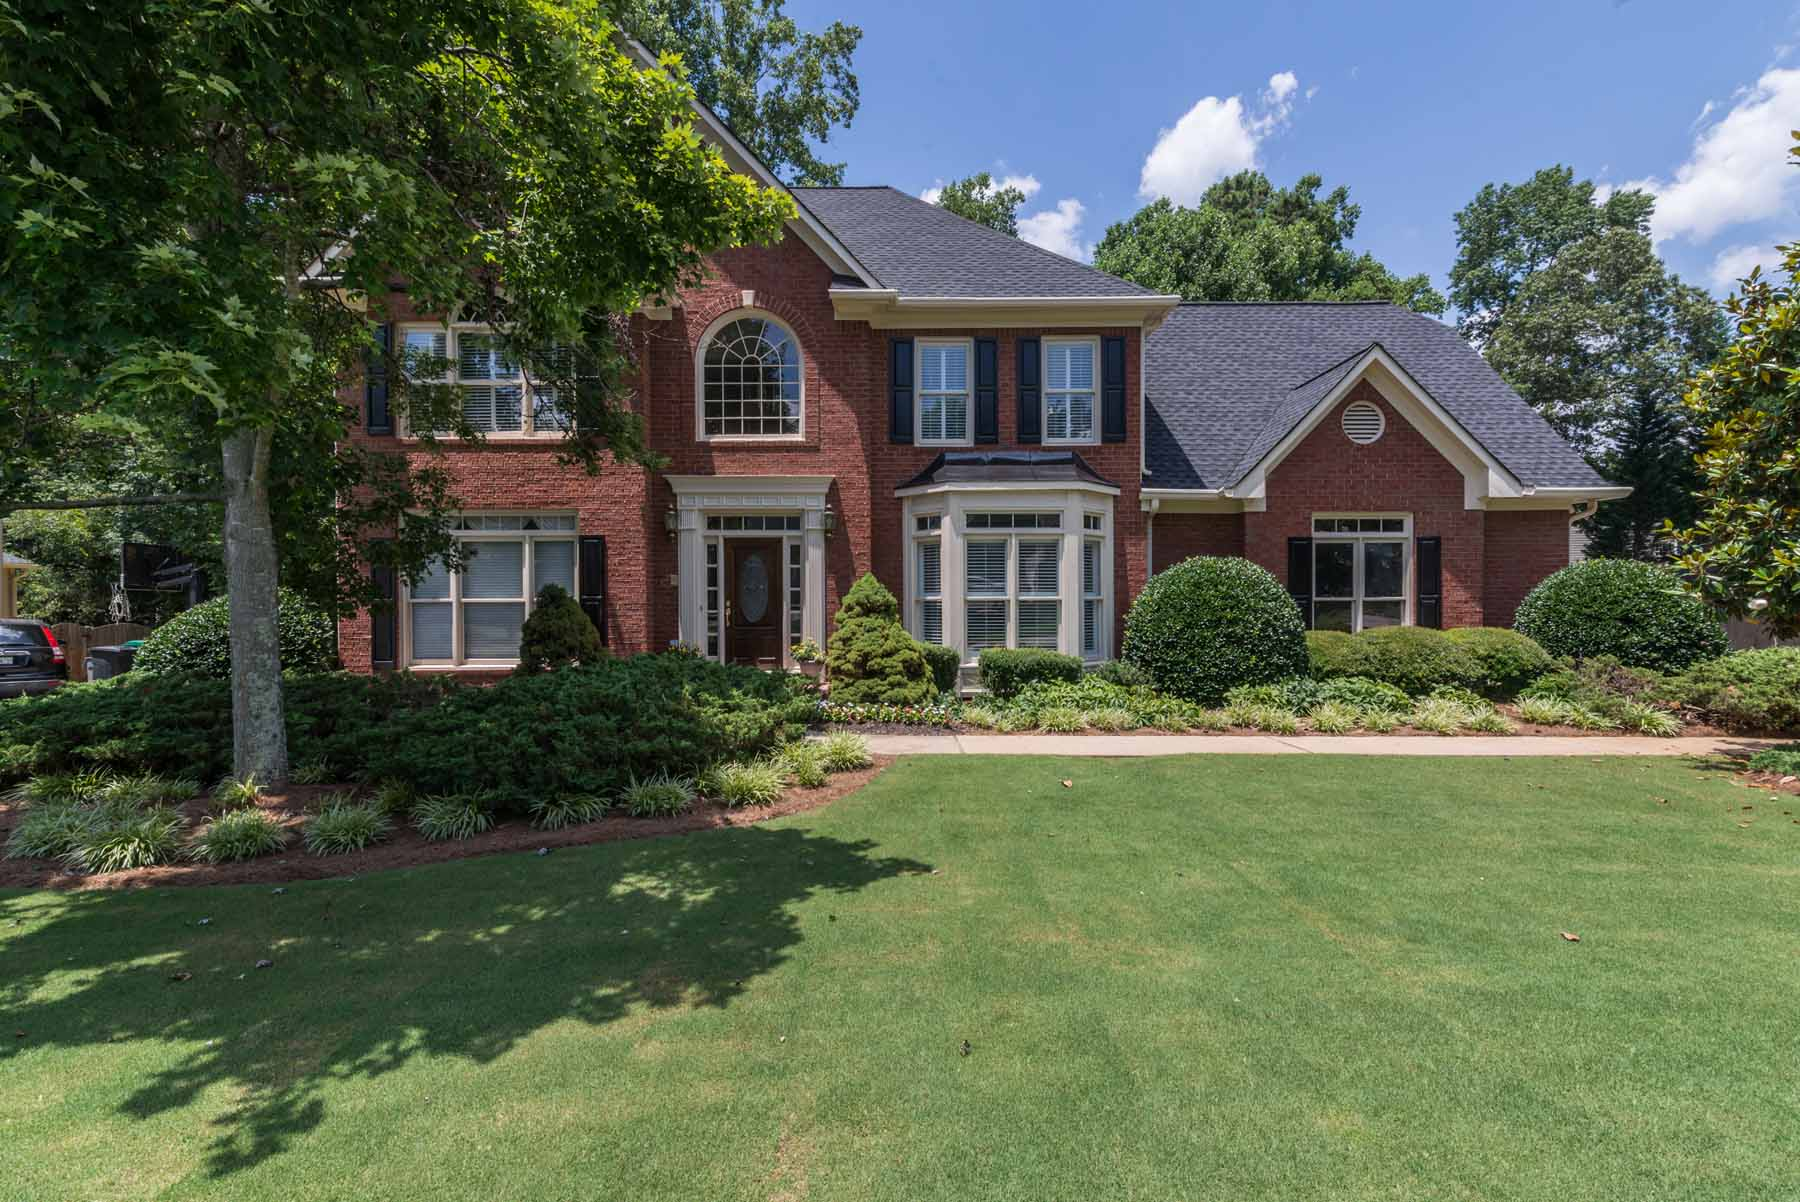 Частный односемейный дом для того Продажа на Immaculate John Wieland Resale in Sought After Cambridge 11830 Devon Downs Trail Alpharetta, Джорджия 30005 Соединенные Штаты